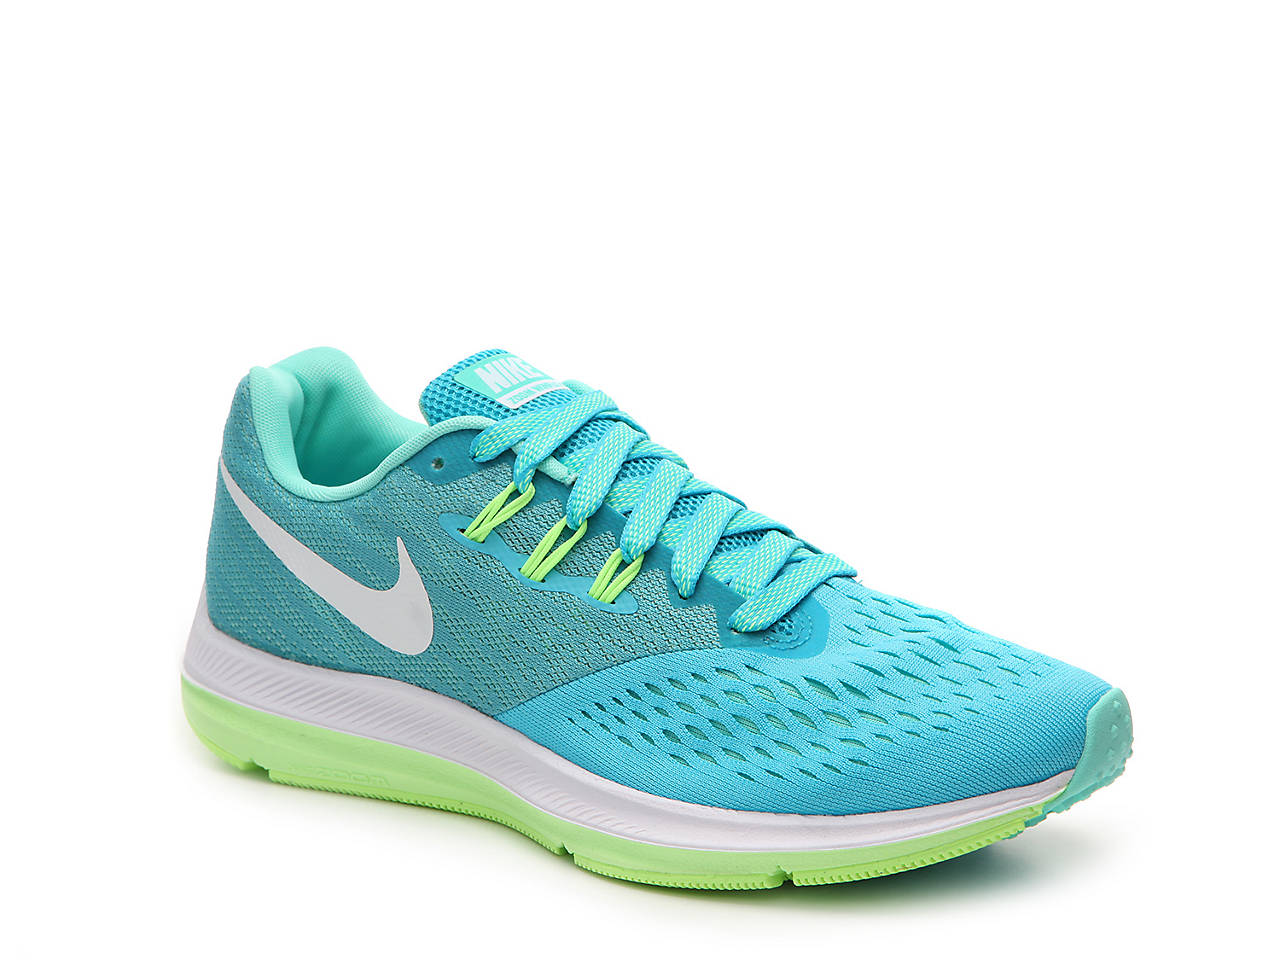 reputable site 93657 2d43e Zoom Winflo 4 Lightweight Running Shoe - Women's